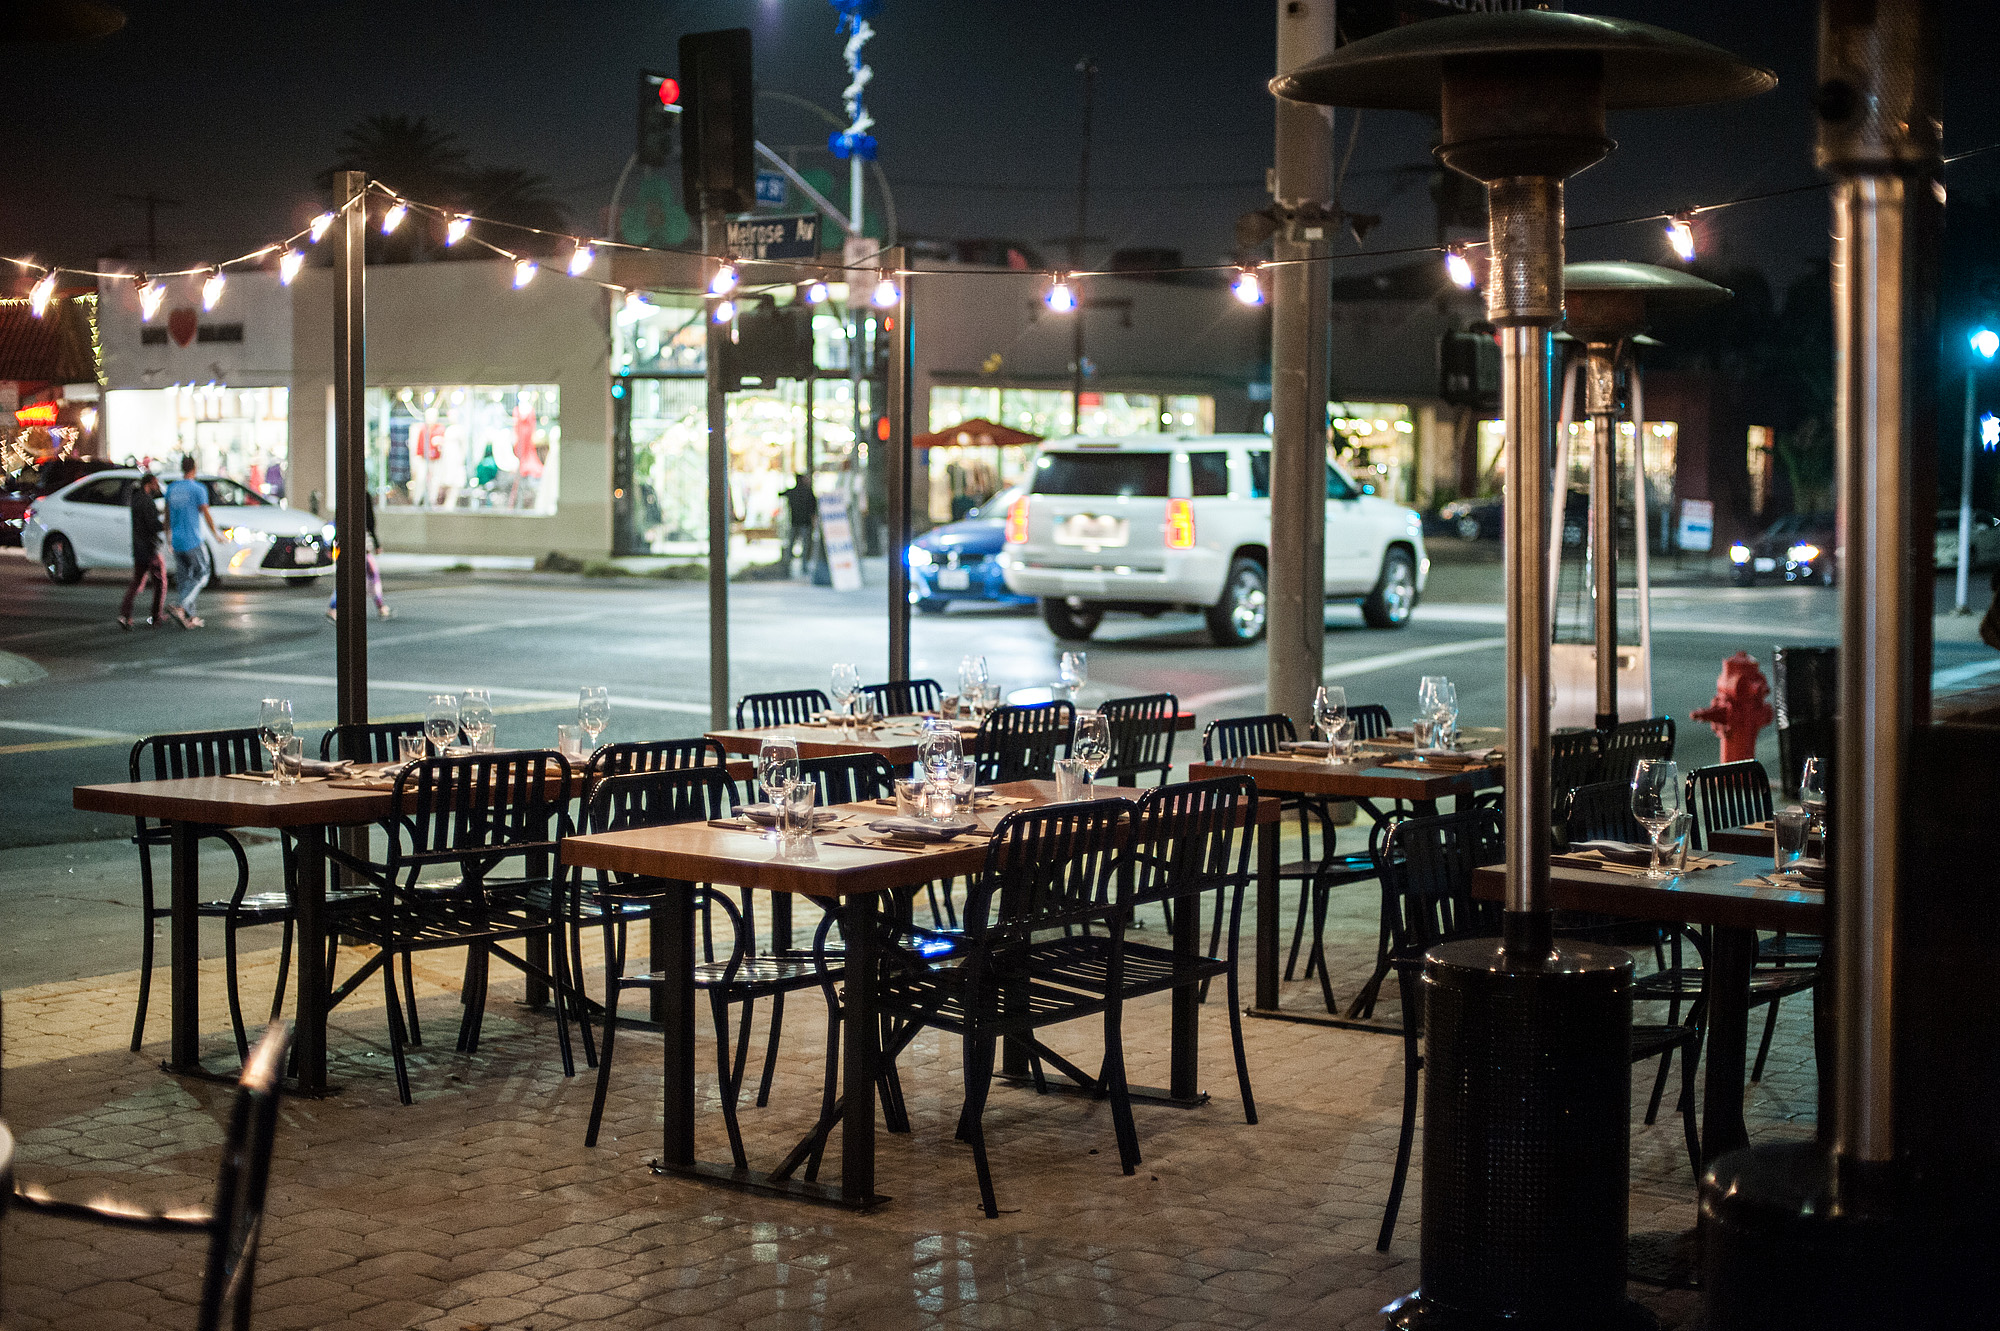 21 Restaurants To Try Along Melrose Avenue In Los Angeles